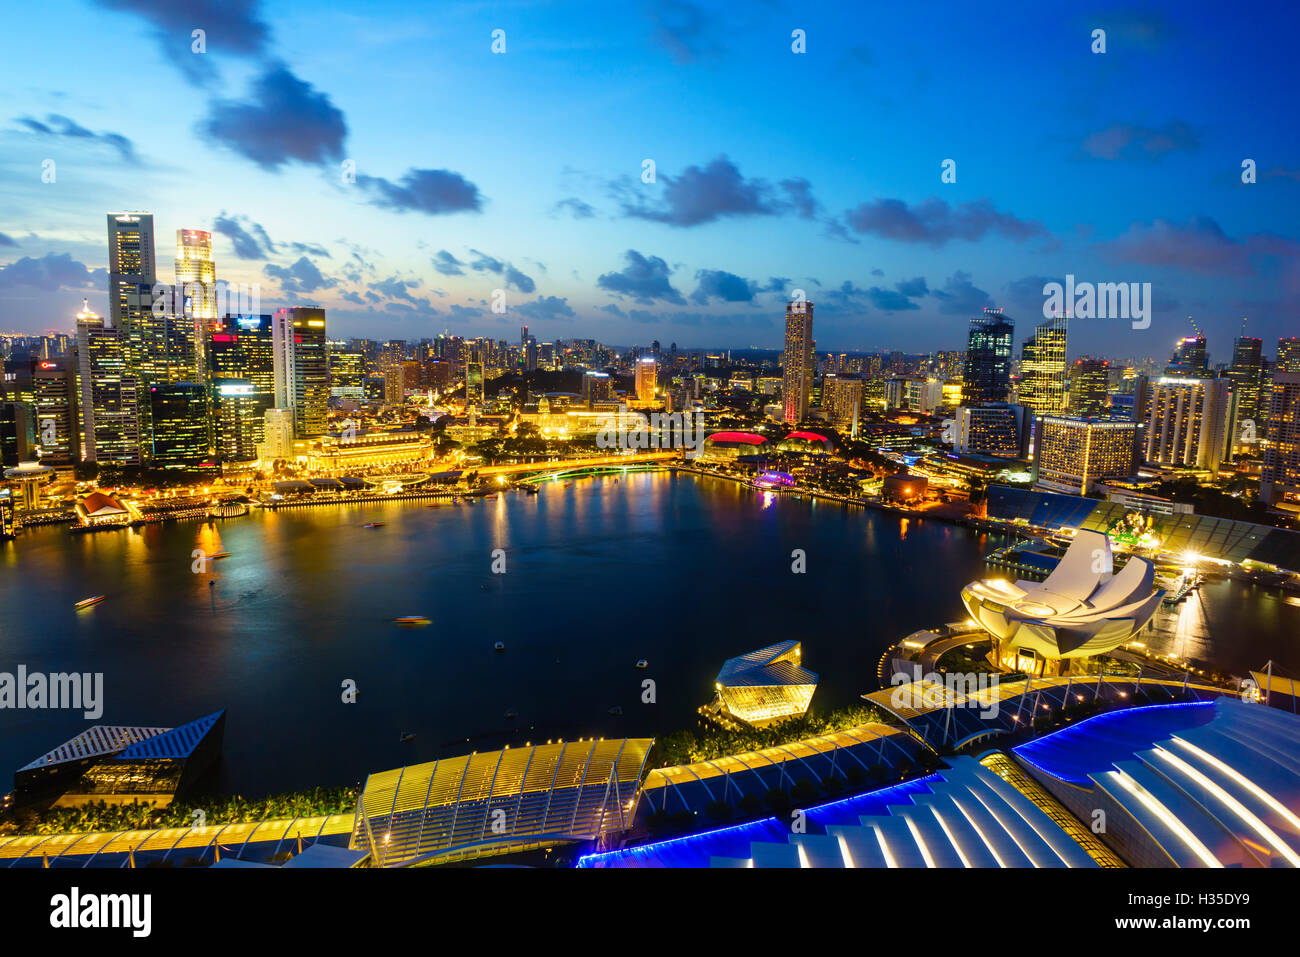 The towers of the Central Business District and Marina Bay at dusk, Singapore - Stock Image